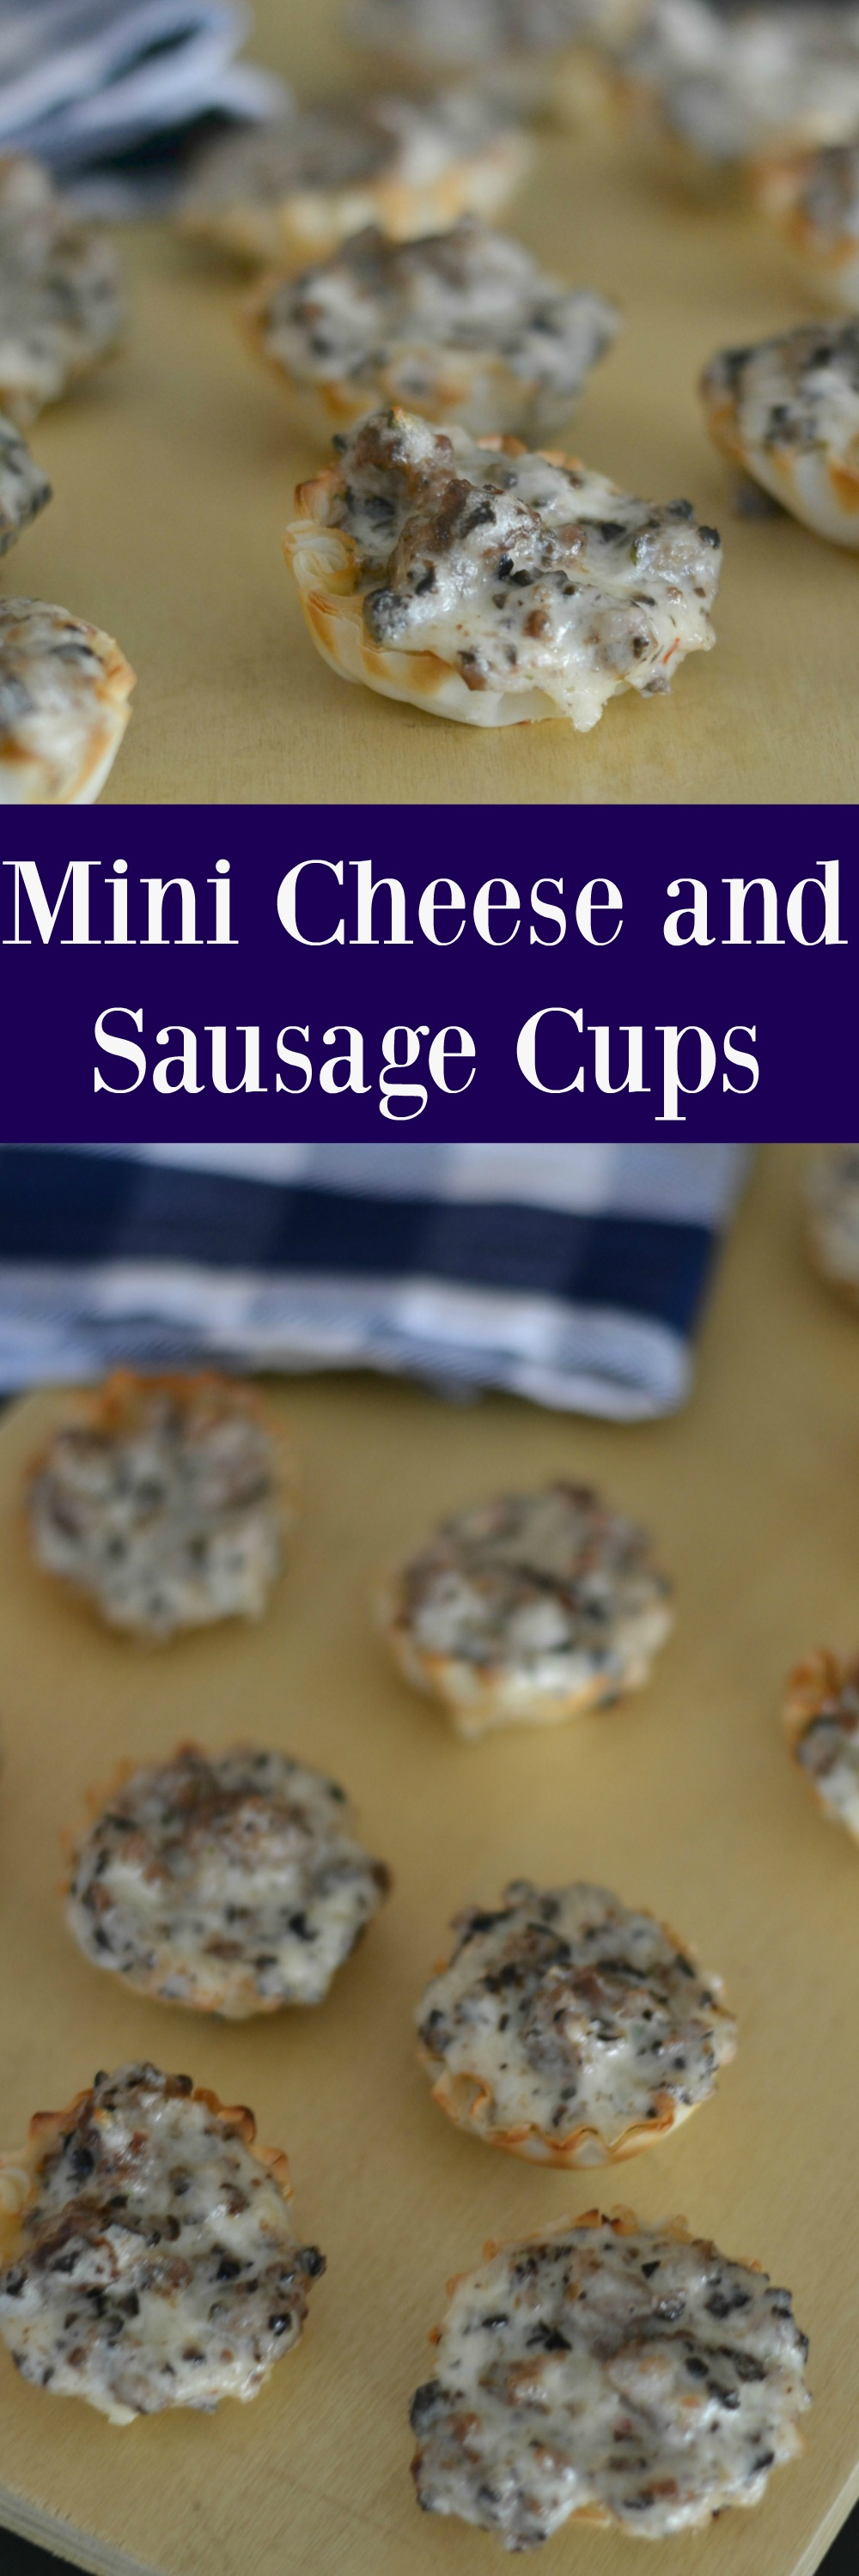 Mini Cheese and Sausage Cups Appetizer